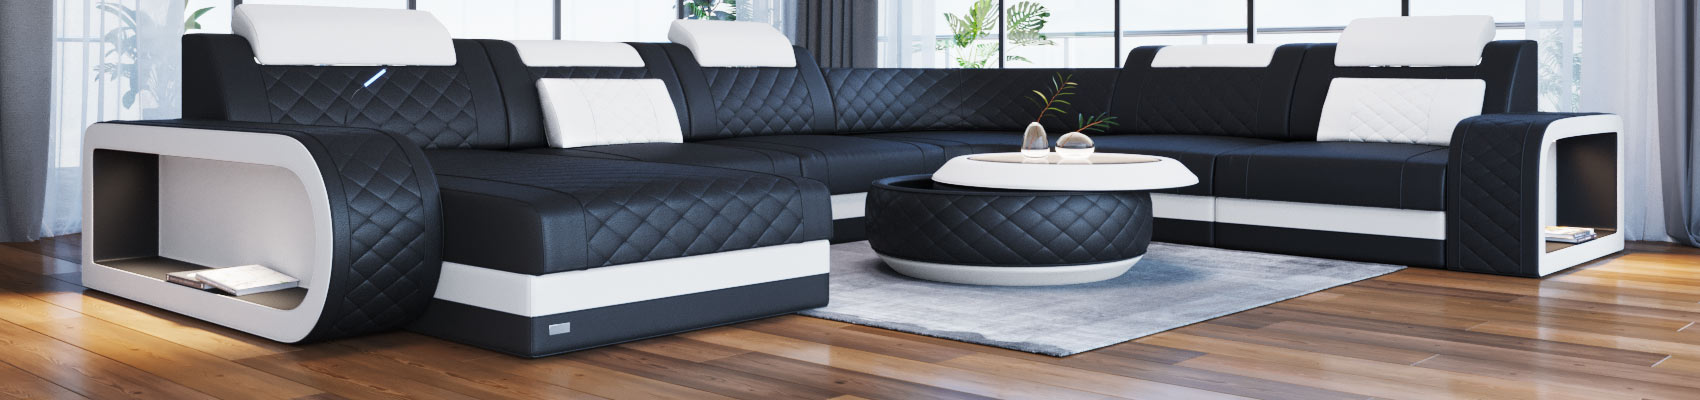 wohnlandschaft xxl u oder l form sofa dreams. Black Bedroom Furniture Sets. Home Design Ideas